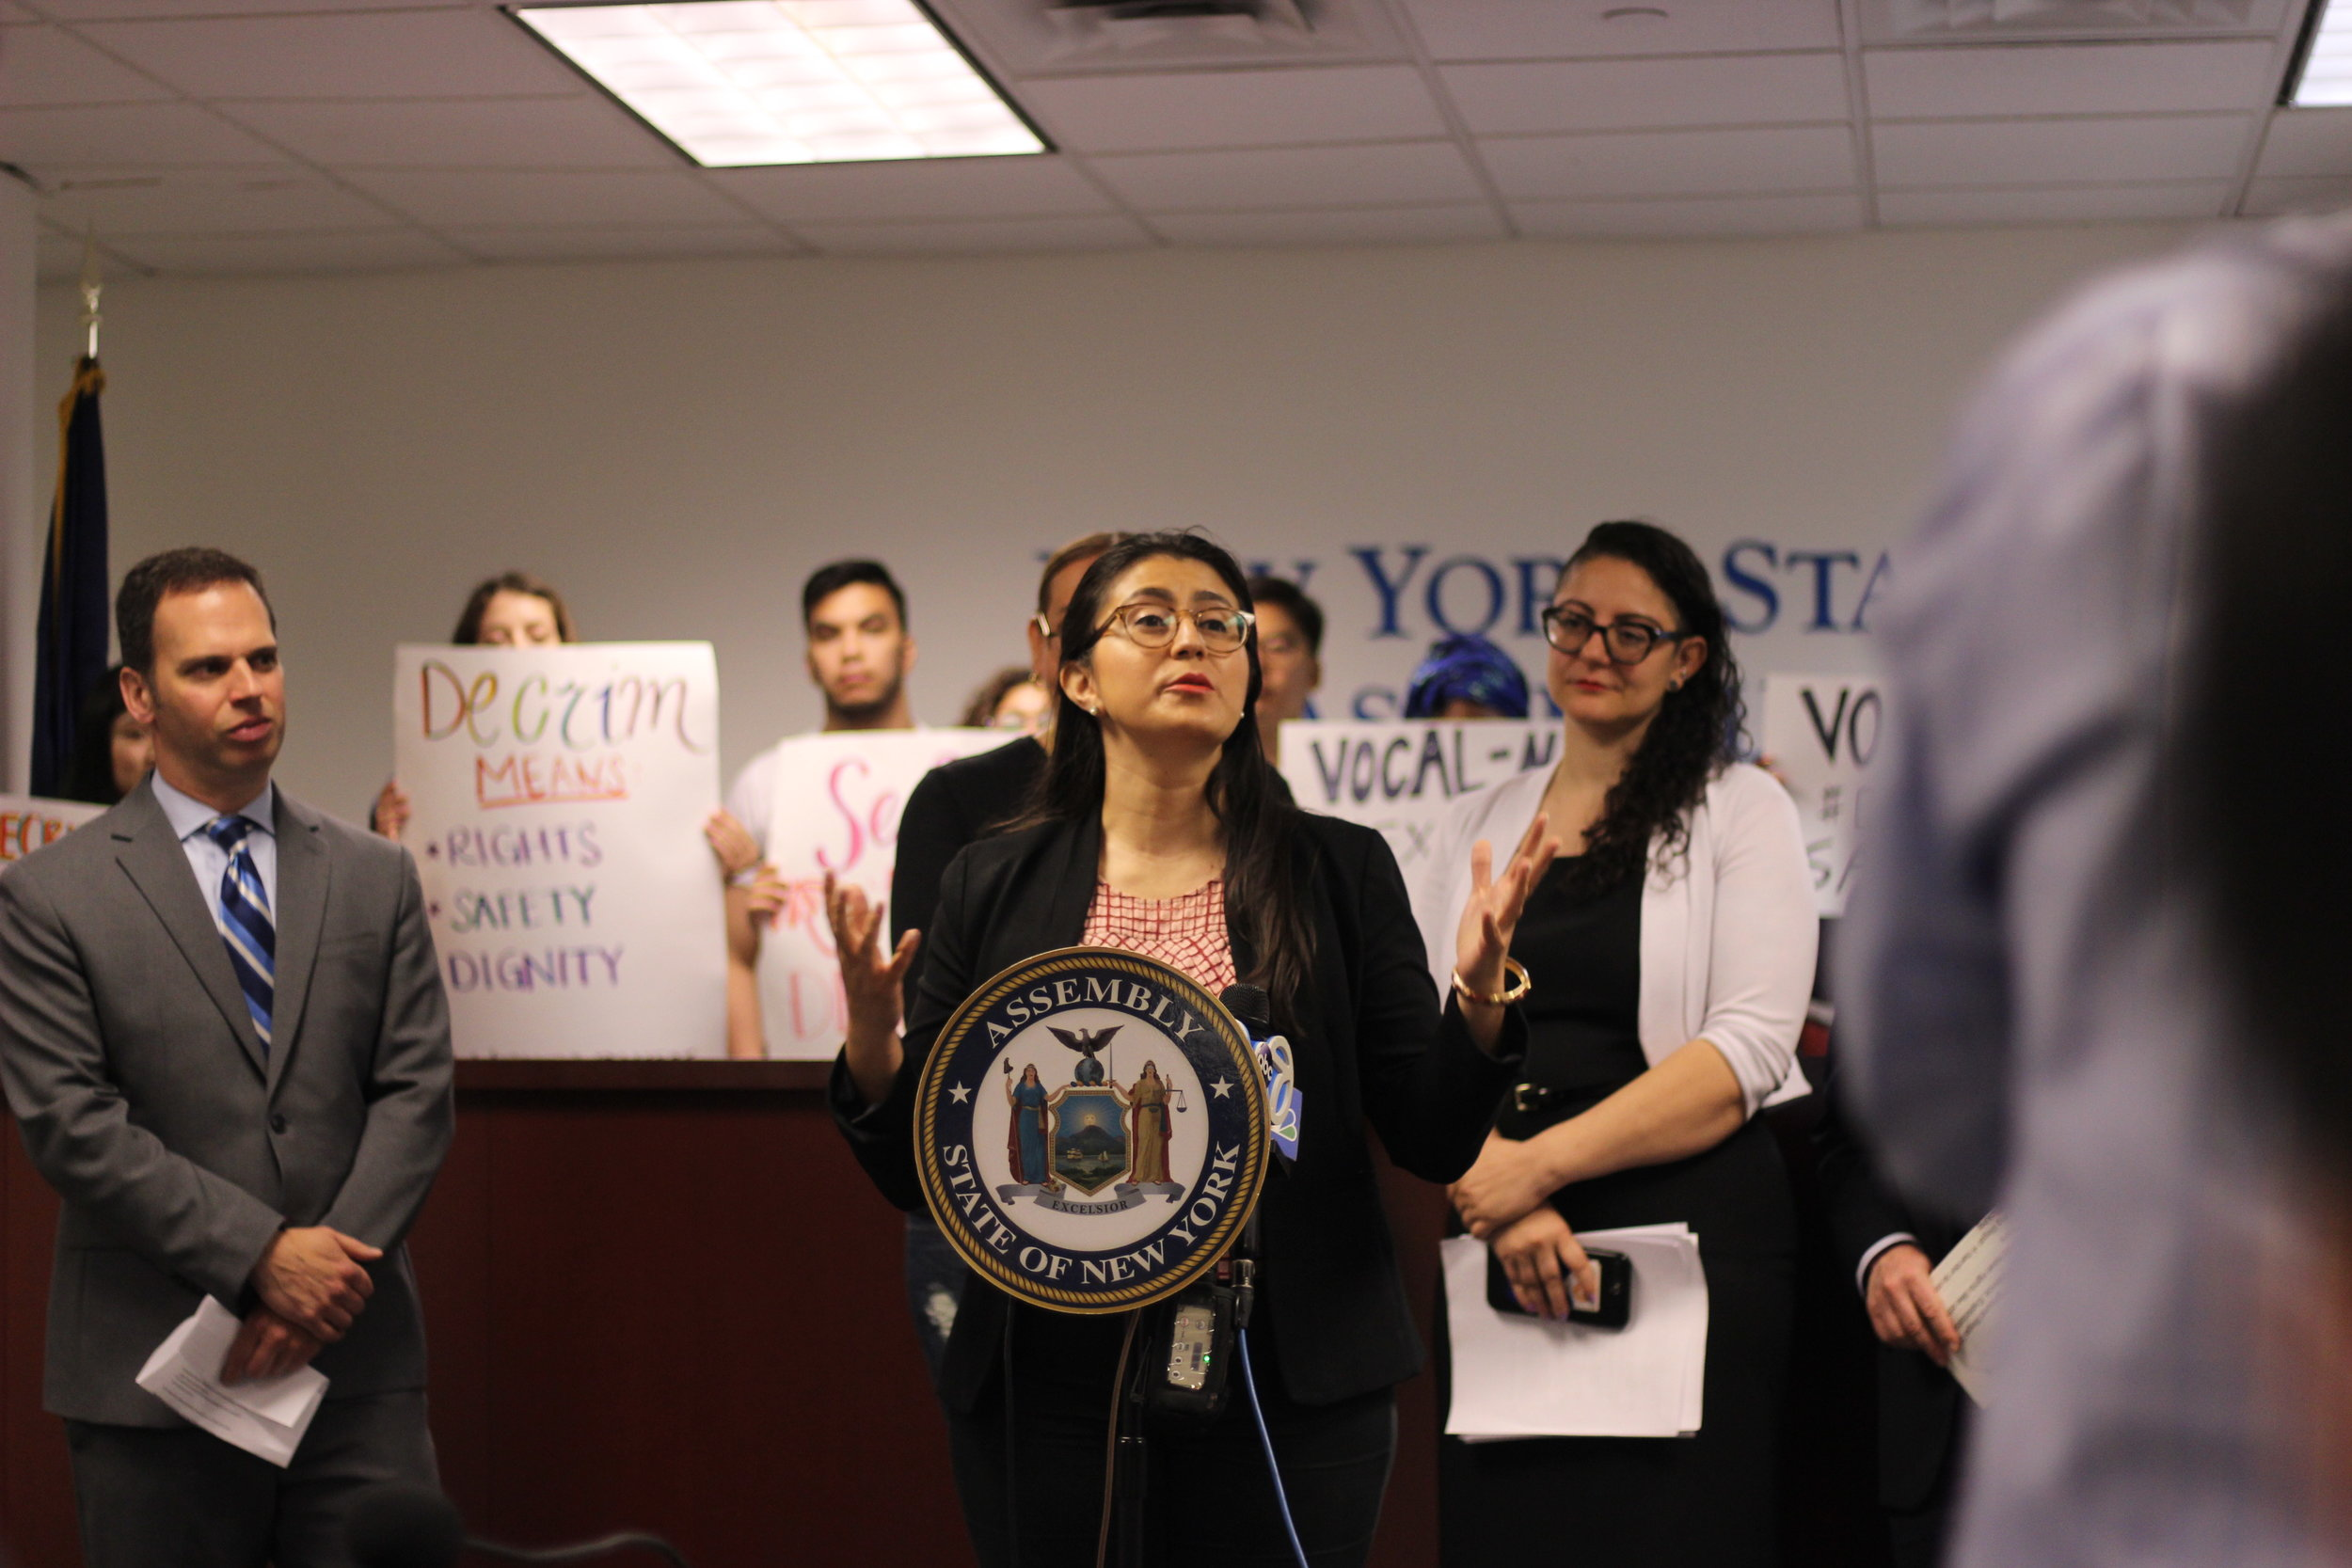 """Here we are to affirm today that sex work is work,"" State Sen. Jessica Ramos said.  Eagle  photo by Victoria Merlino."